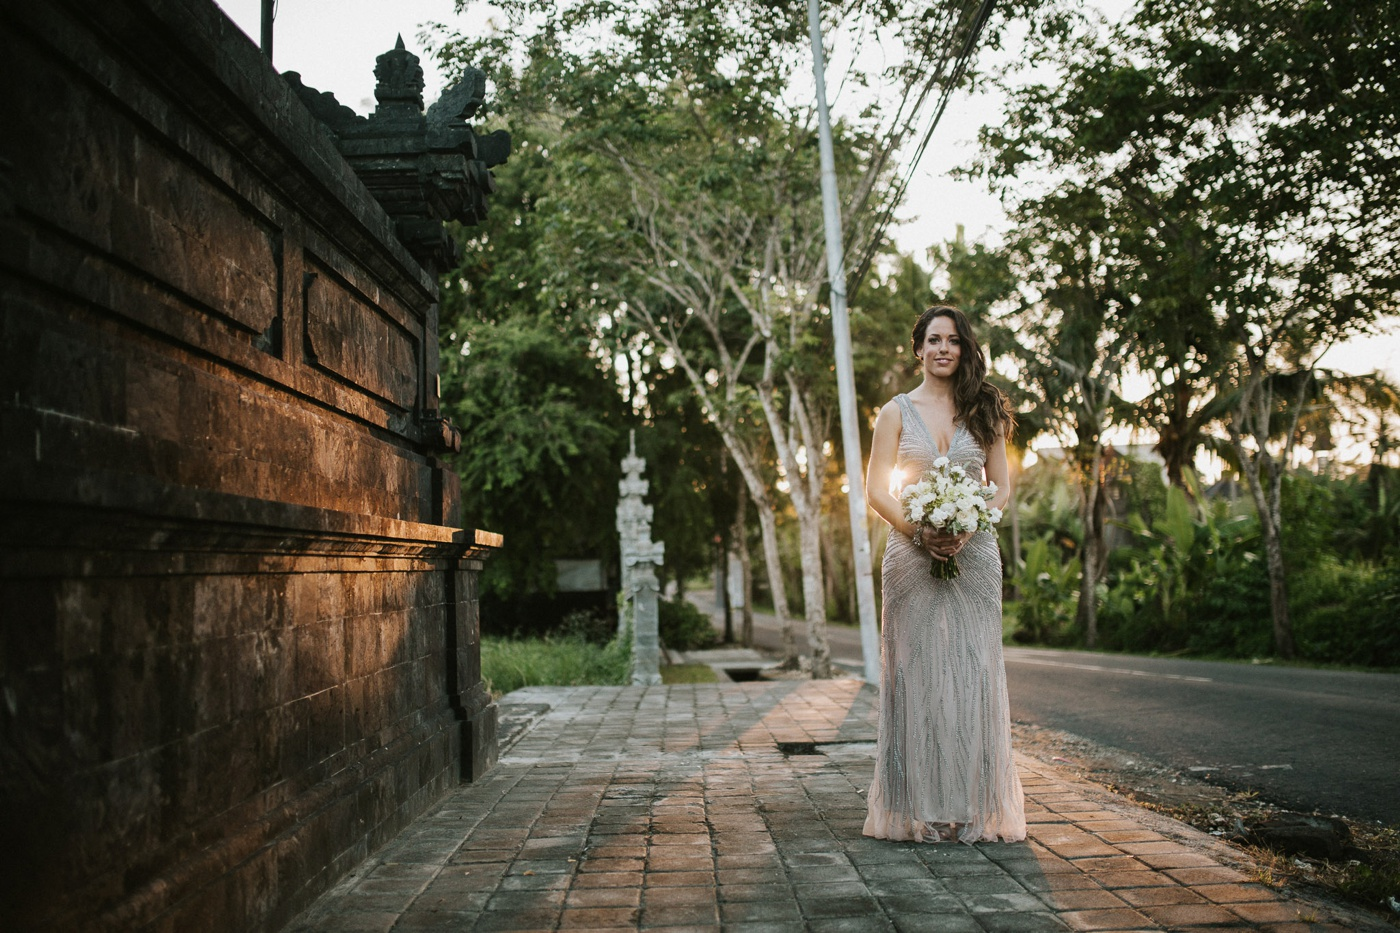 Deb-Ibs_Bali-Tropical-Relaxed-Wedding_Destination-Wedding-Photography_Melbourne-Wedding-Photographer_89